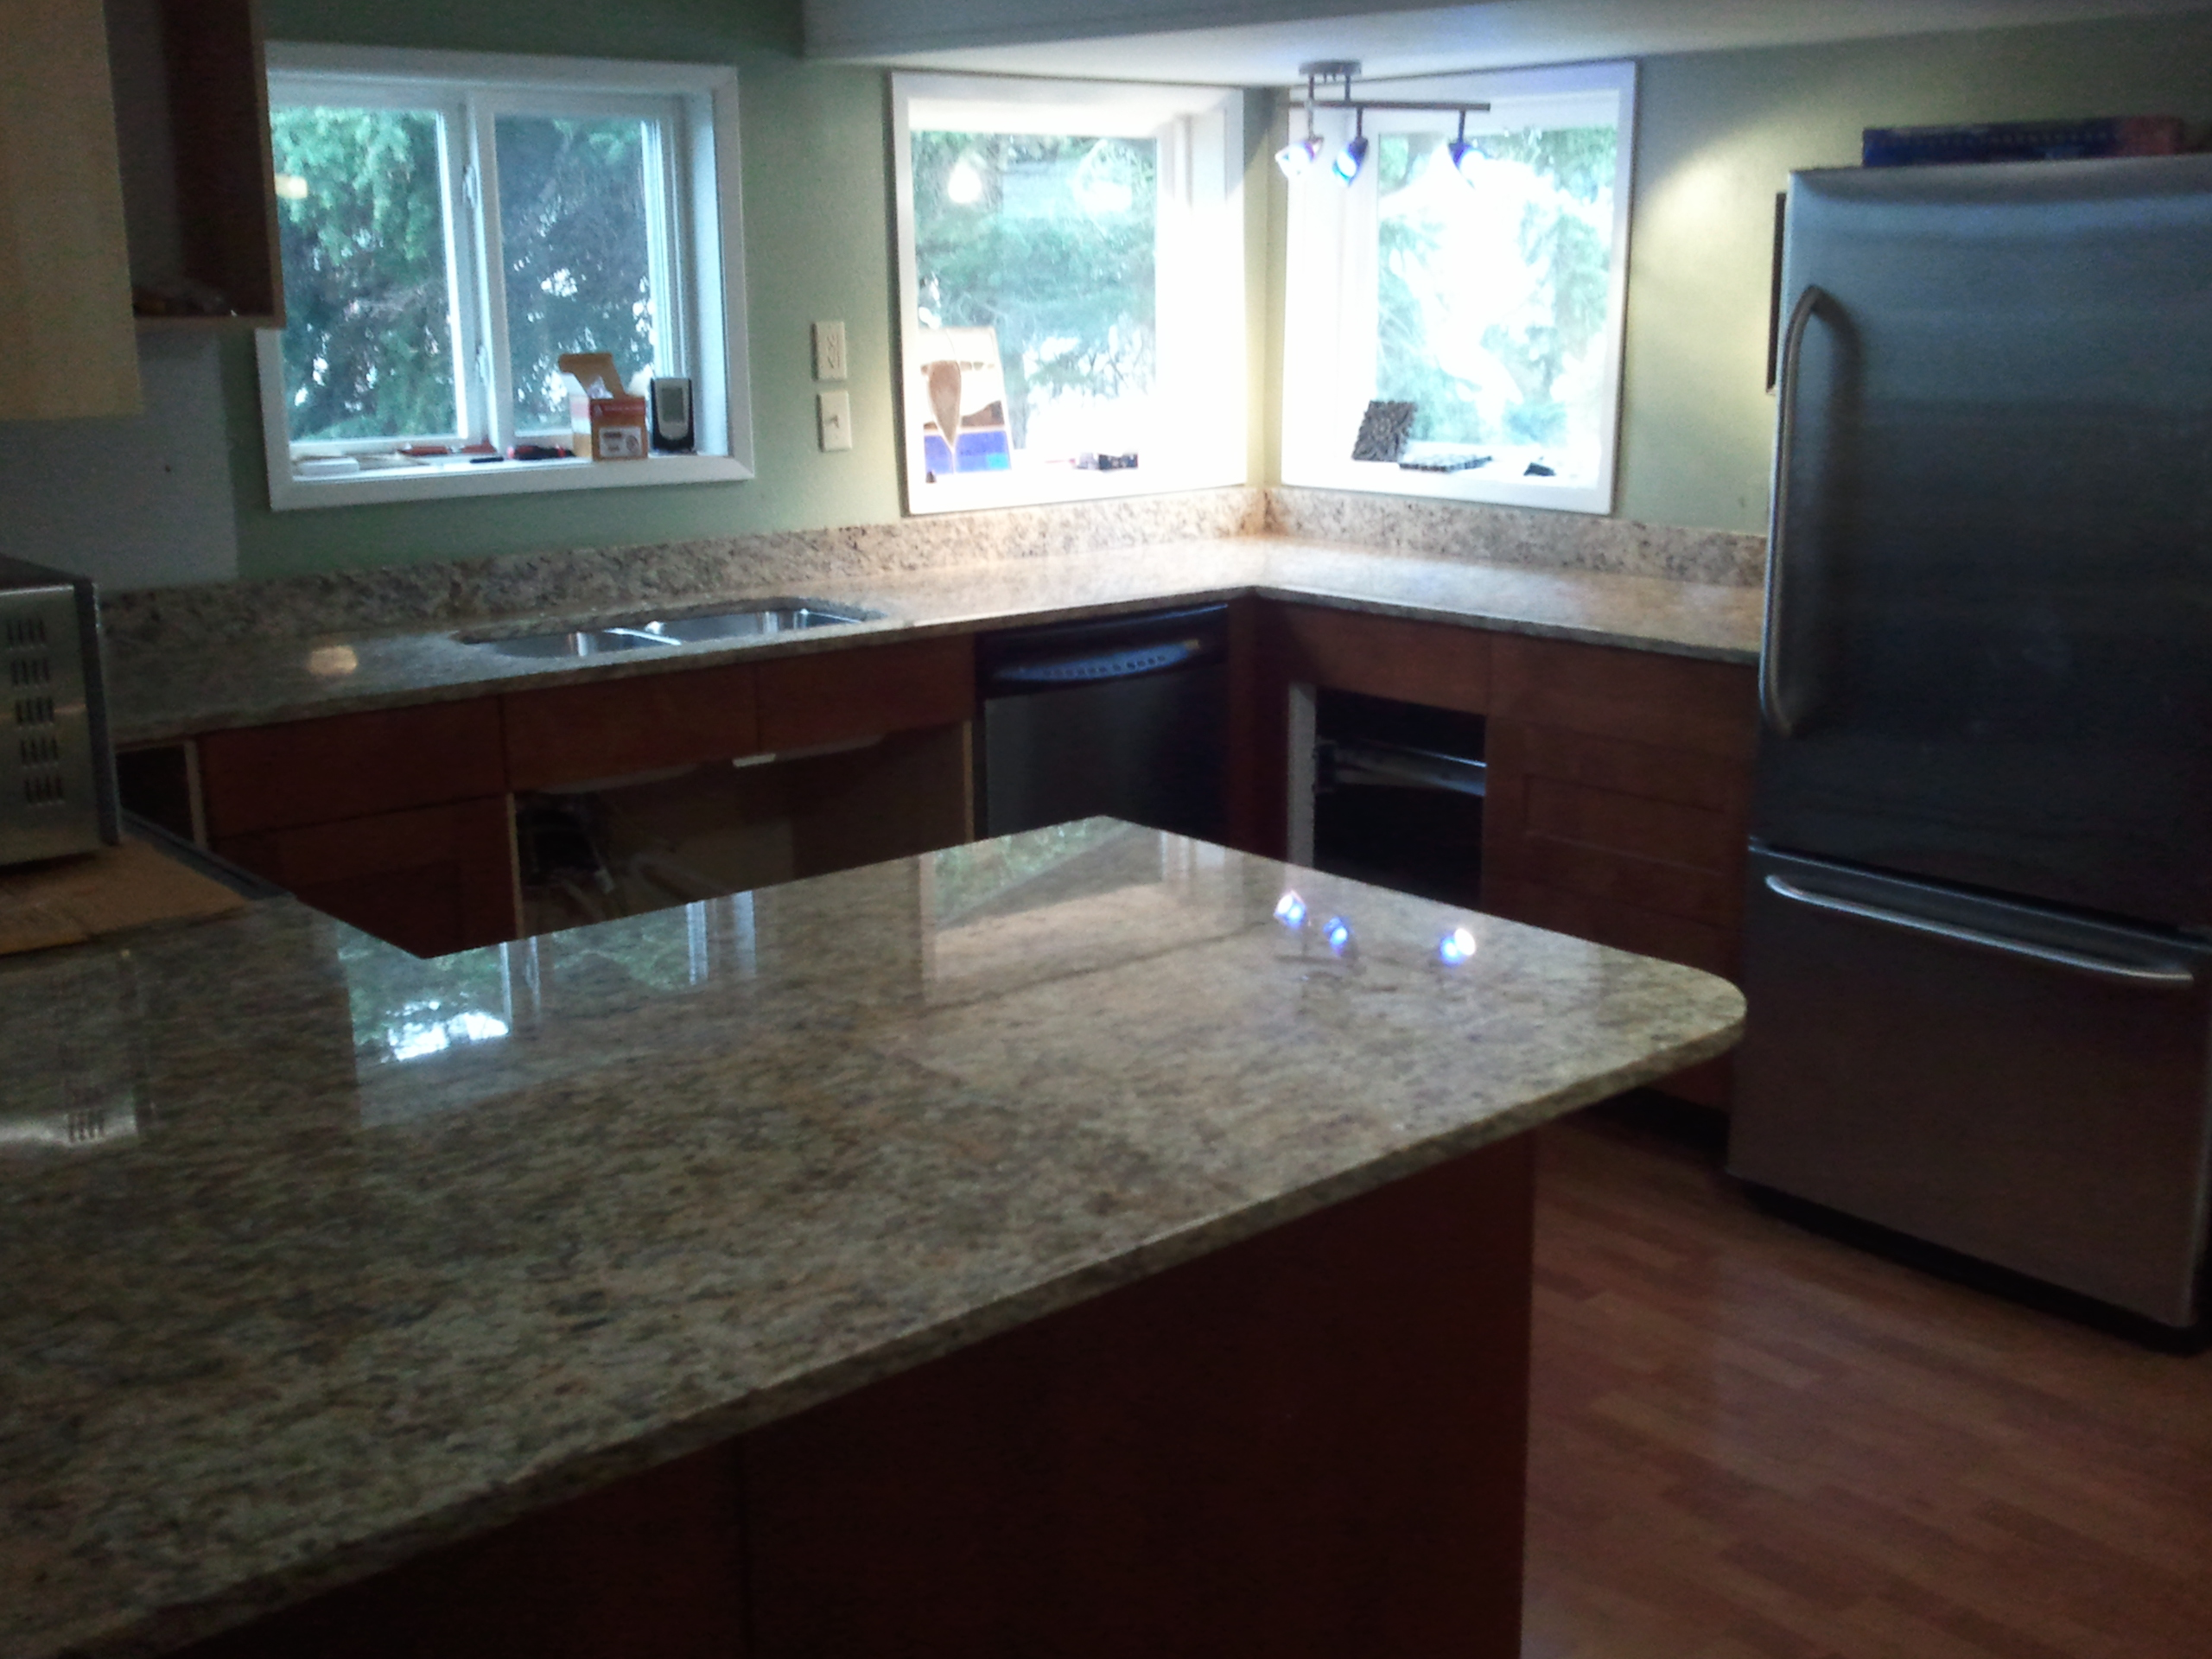 File:Kitchen stone countertops.jpg - Wikimedia Commons